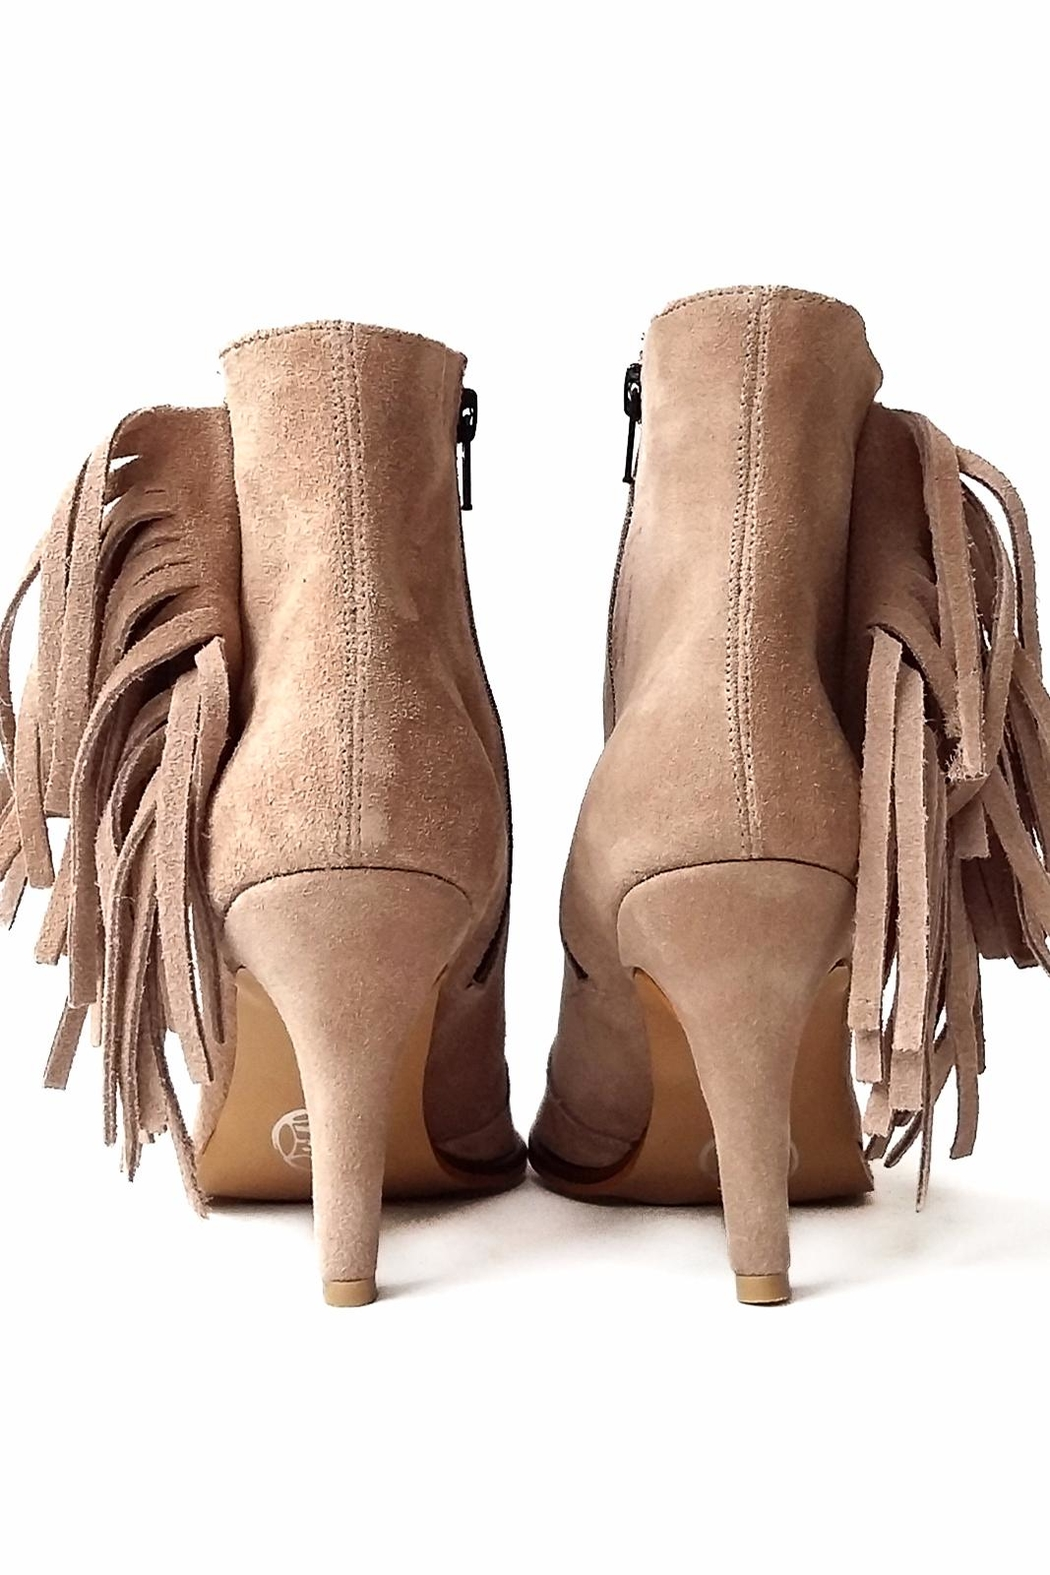 MIYE COLLAZZO BEIGE JOY BOOTIE - Side Cropped Image